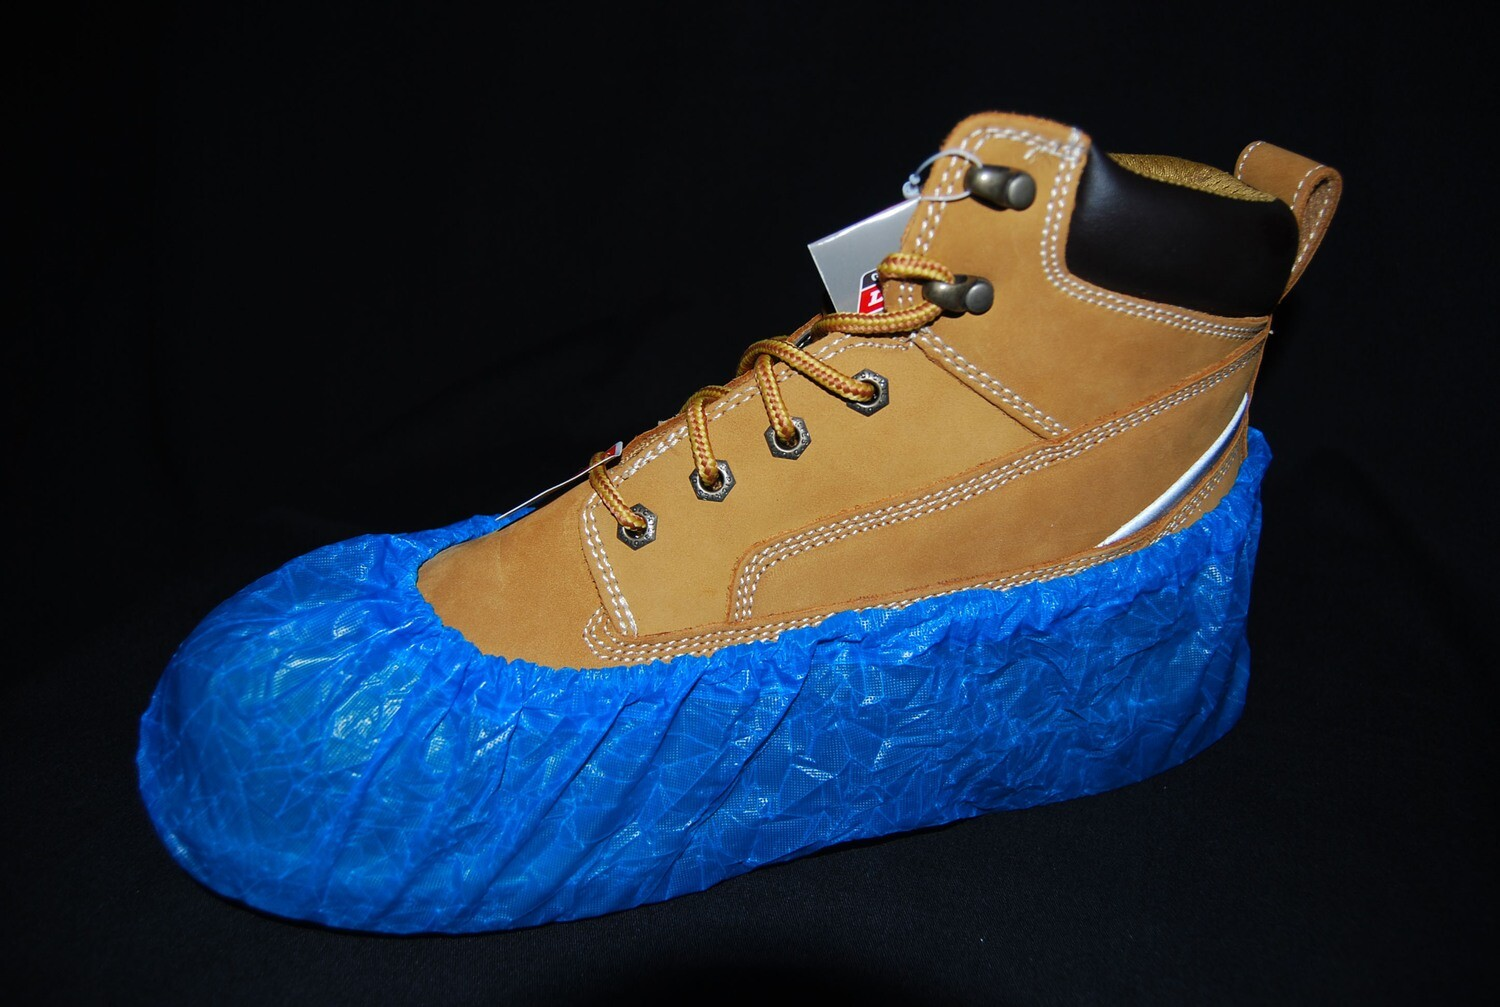 300 Waterproof Shoe Covers - Extra Large